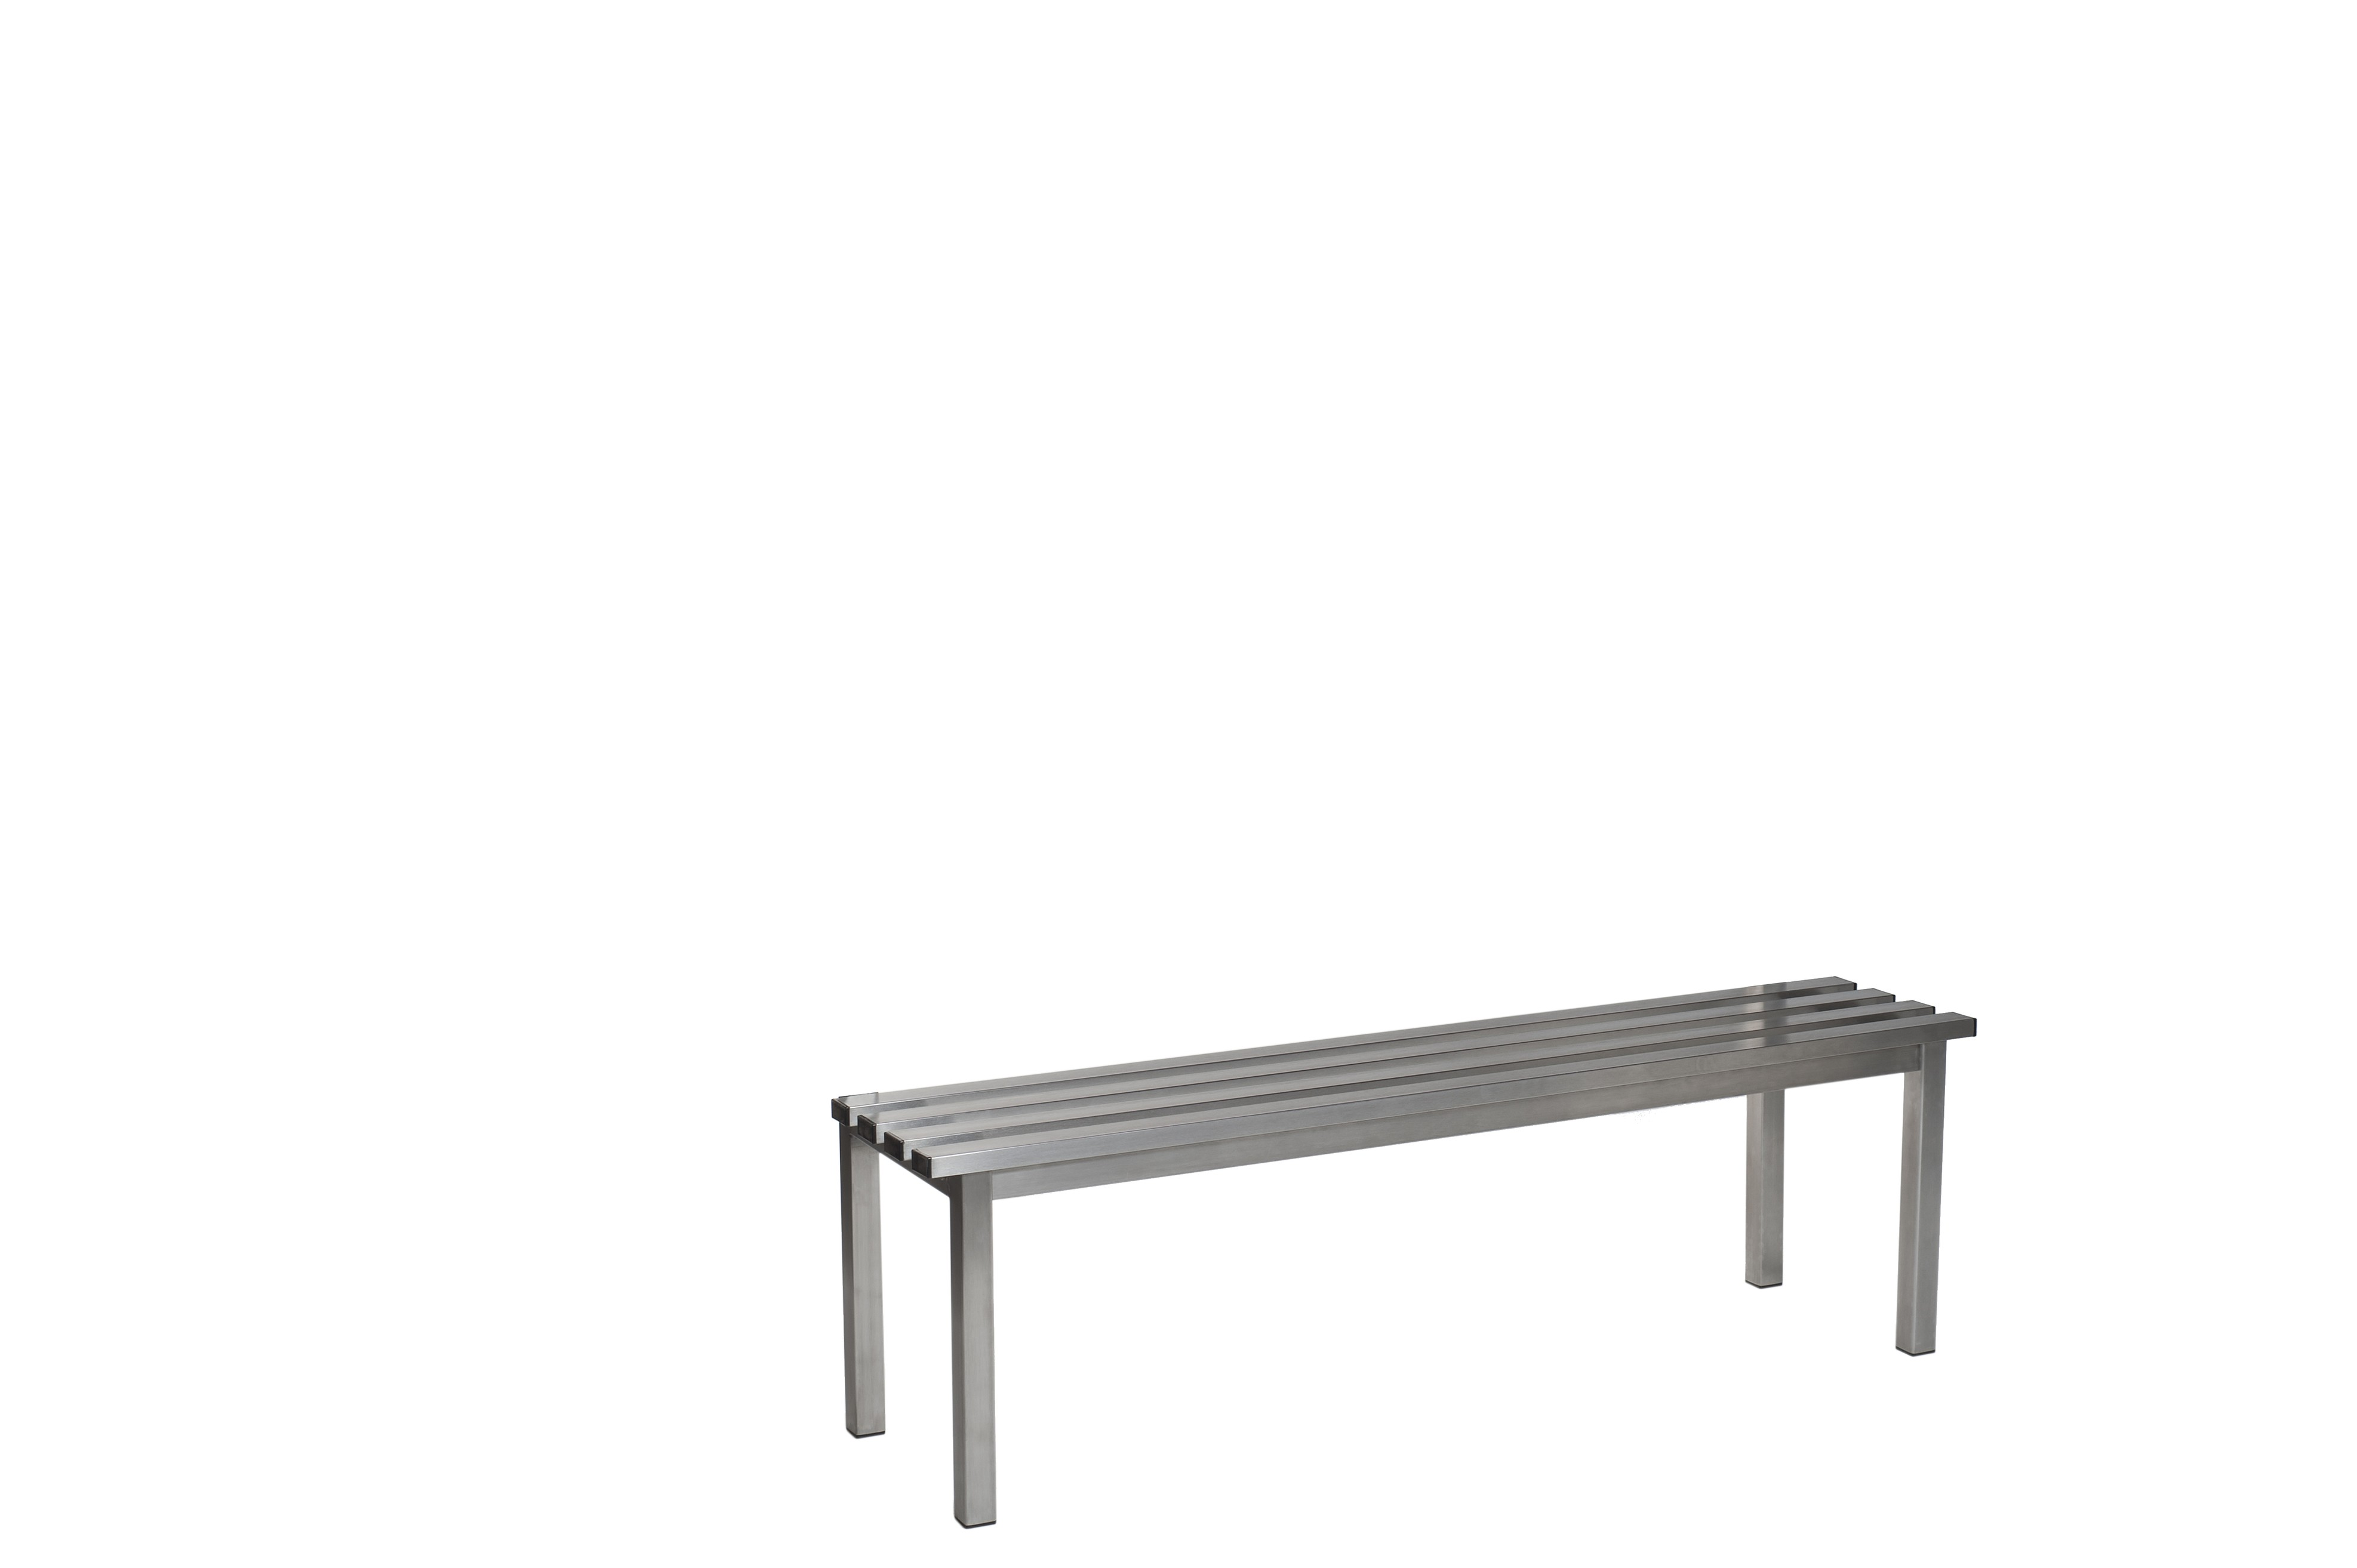 Stainless Steel Bench - Stainless Steel Slats